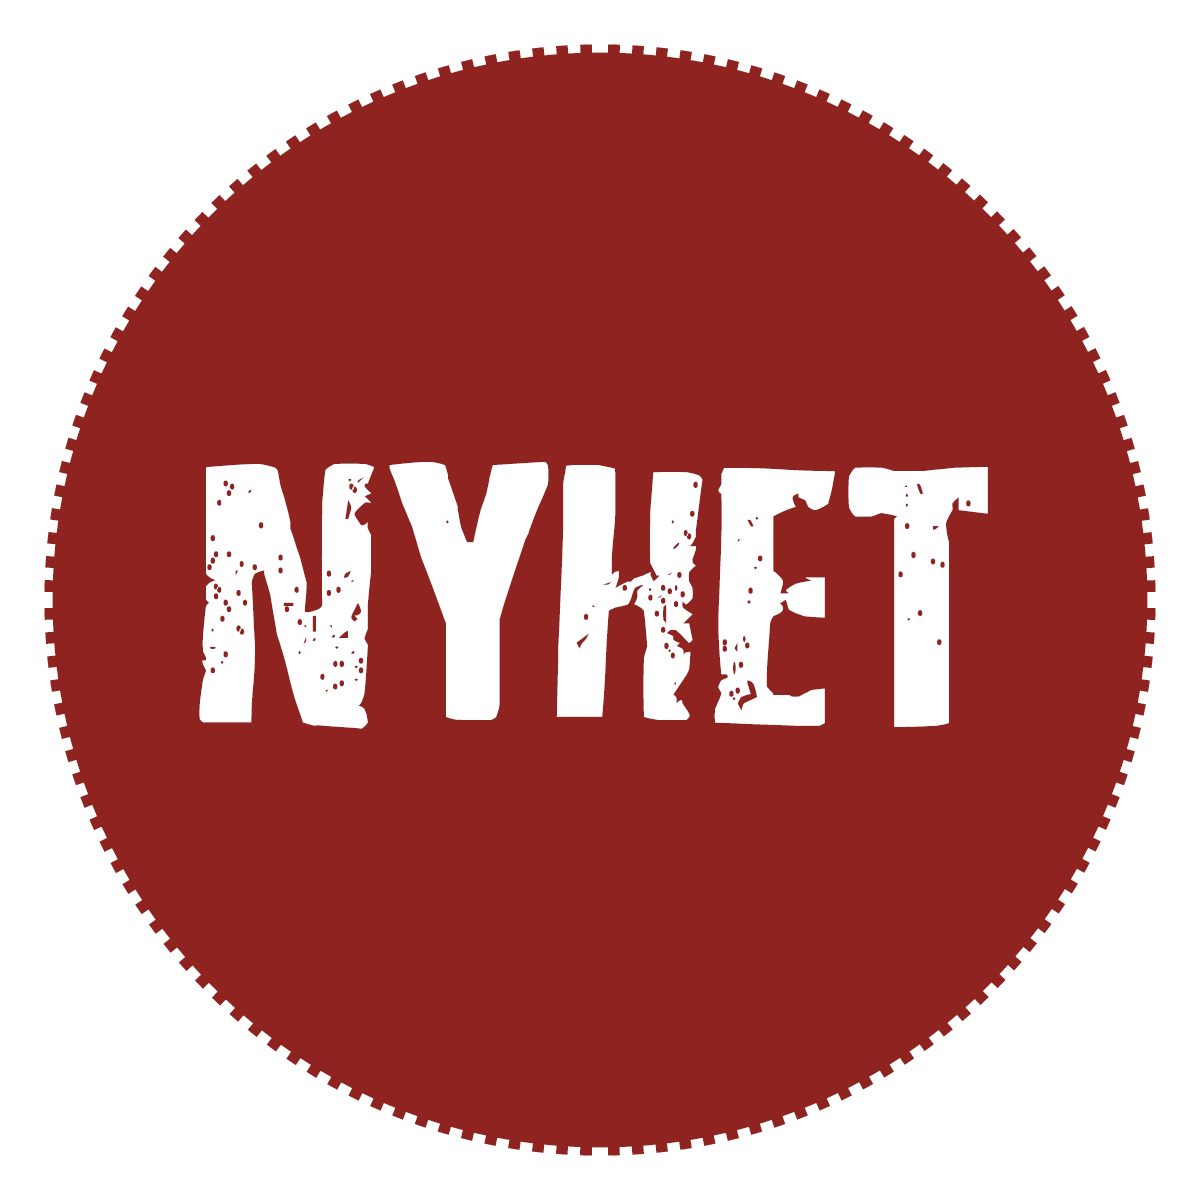 https://www.flintfotball.no/wp-content/uploads/2021/03/NYHET.png